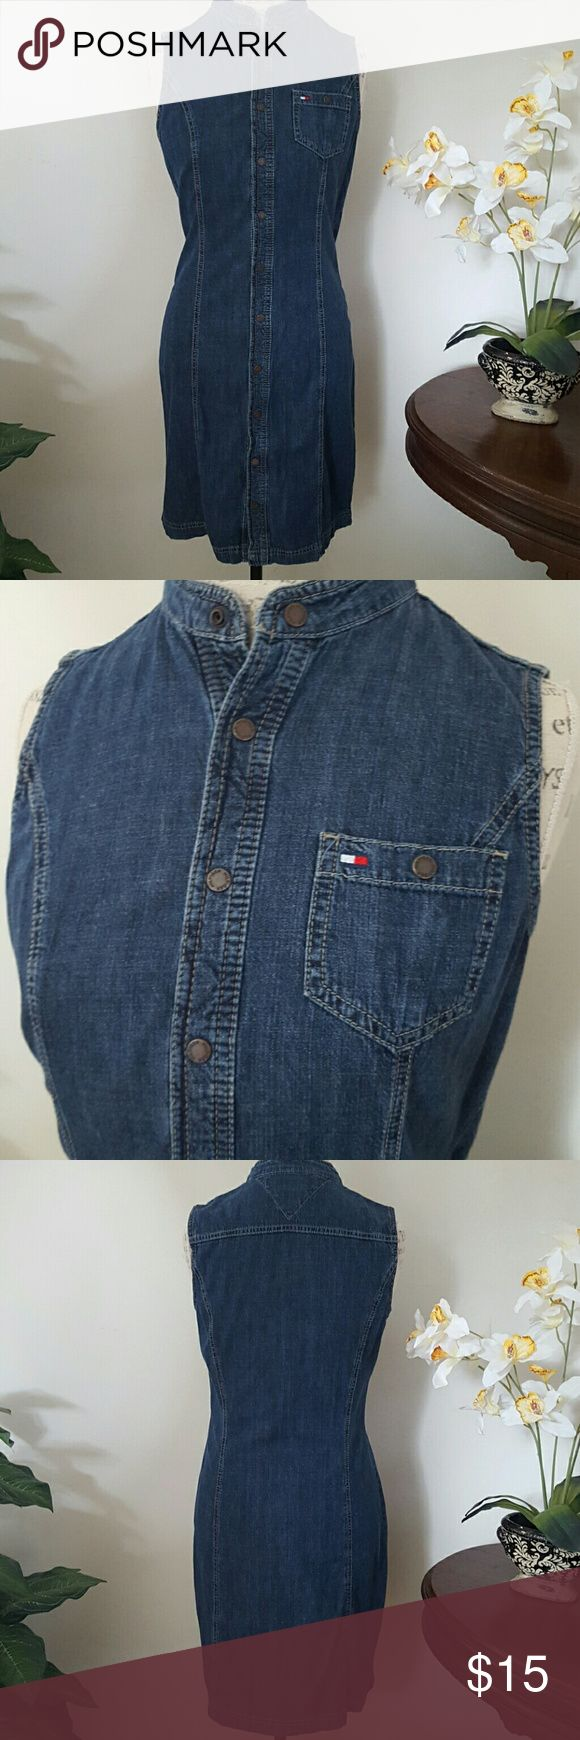 Tommy Hilfiger Jean Dress By Tommy Hilfiger Jeans, made in Turkey.  Snaps all the way down the front for a multitude of looks. Sleeveless with Hilfiger Logo on left breast pocket. Tommy Hilfiger  Dresses Midi